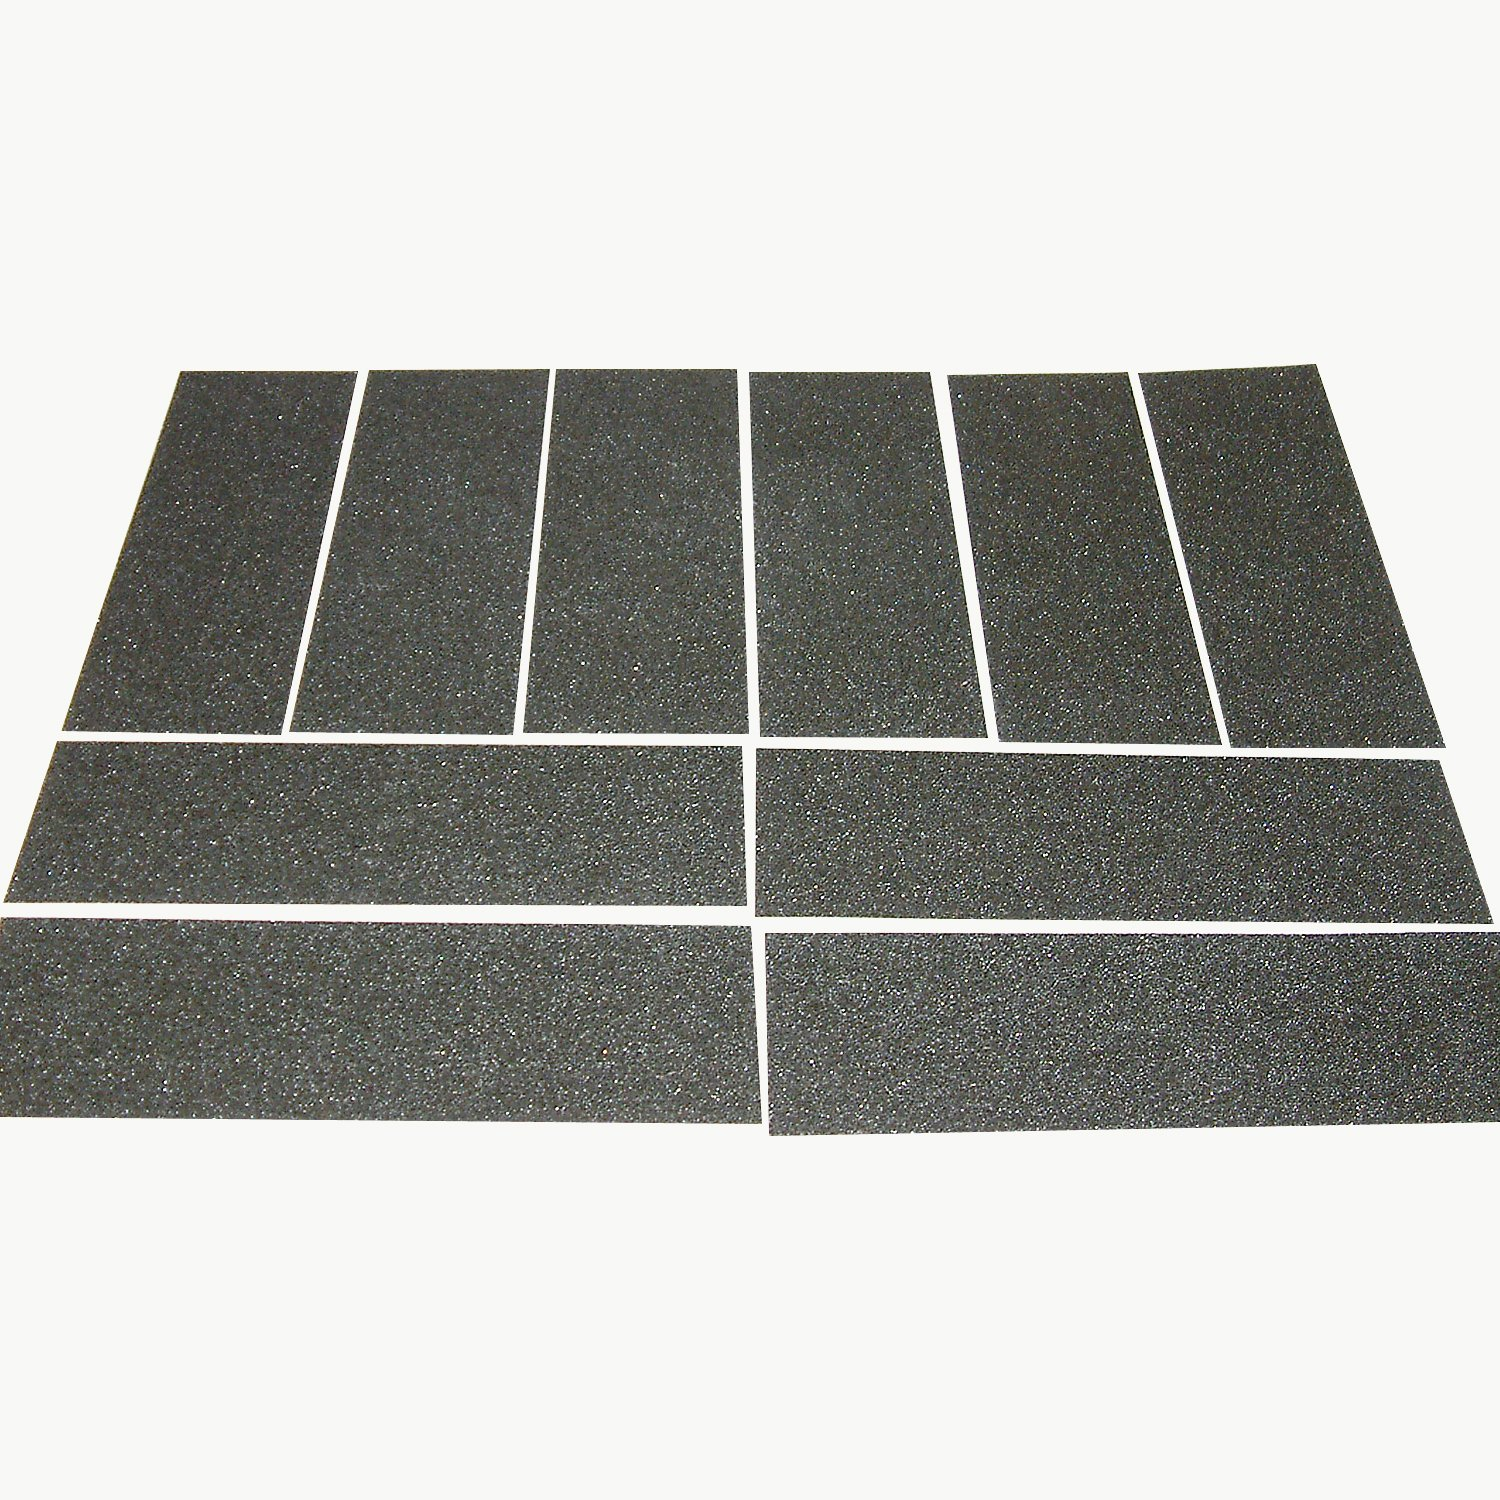 JVCC NS-S Non-Skid Strips: 4 in. x 12 in. (Black) [10 Strips/Pack]